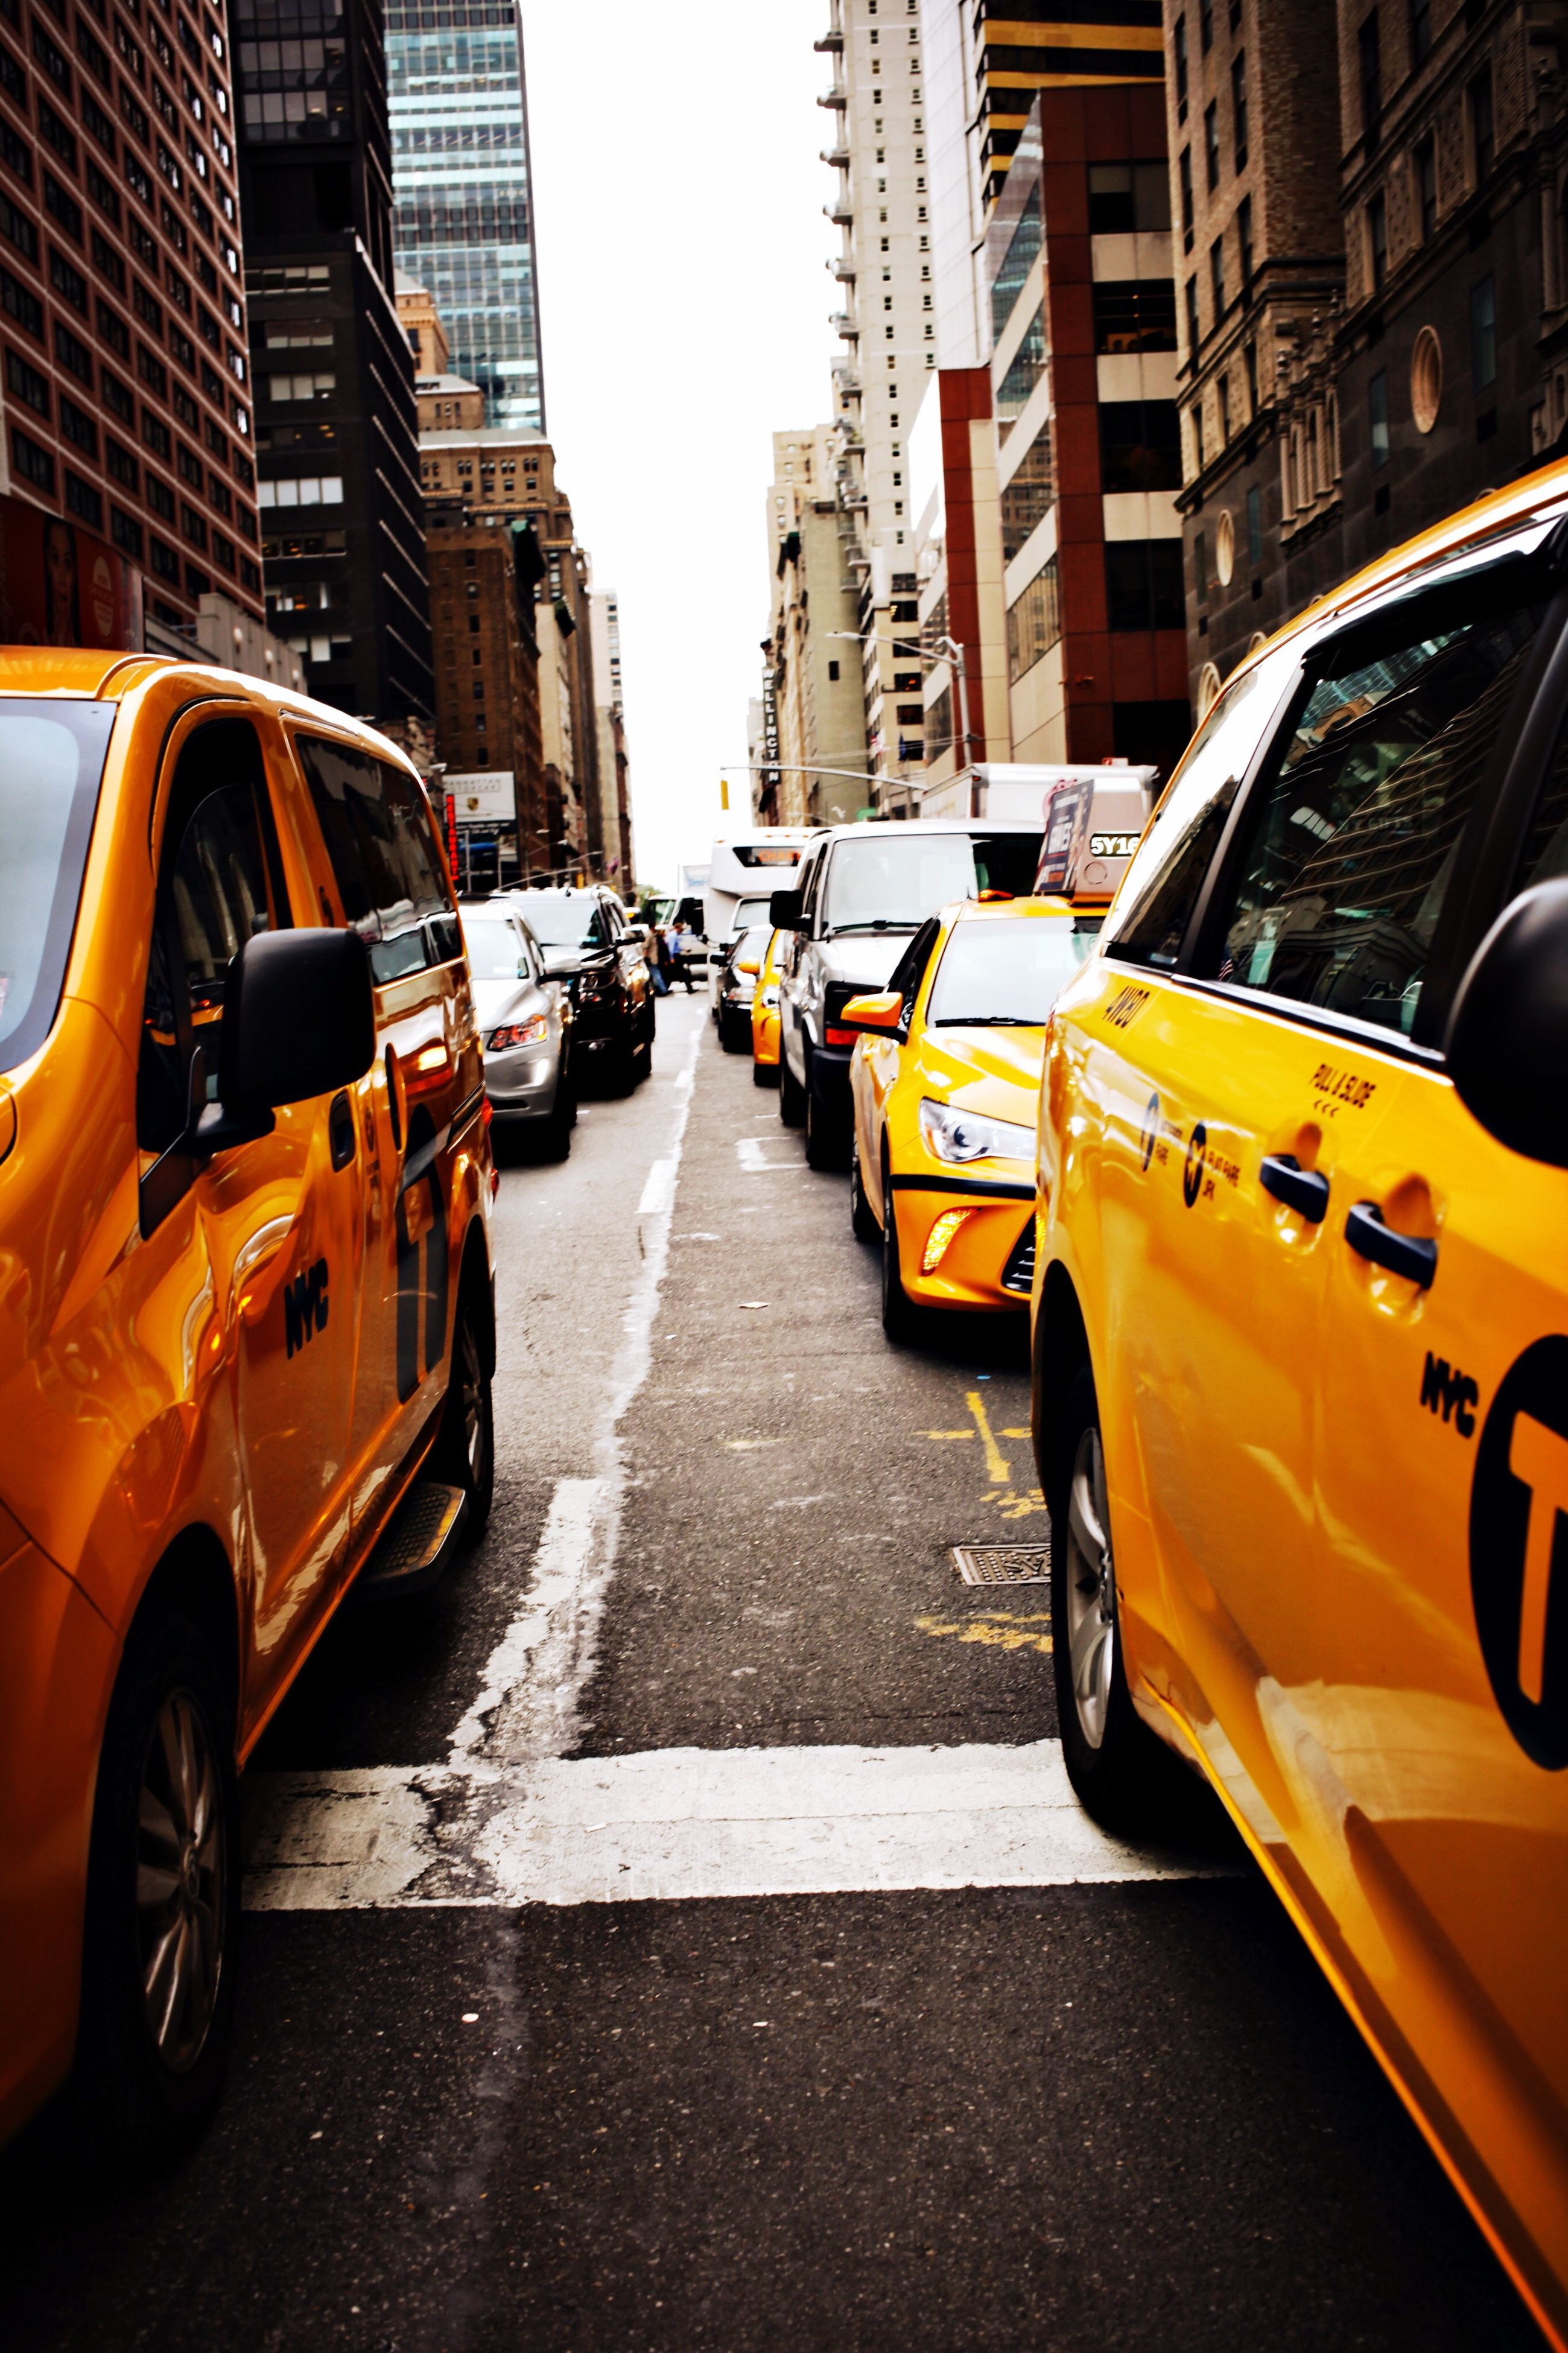 car, mode of transport, transportation, land vehicle, city, architecture, built structure, building exterior, street, road, city life, taxi, city street, road marking, yellow, yellow taxi, rush hour, outdoors, skyscraper, day, office building, busy